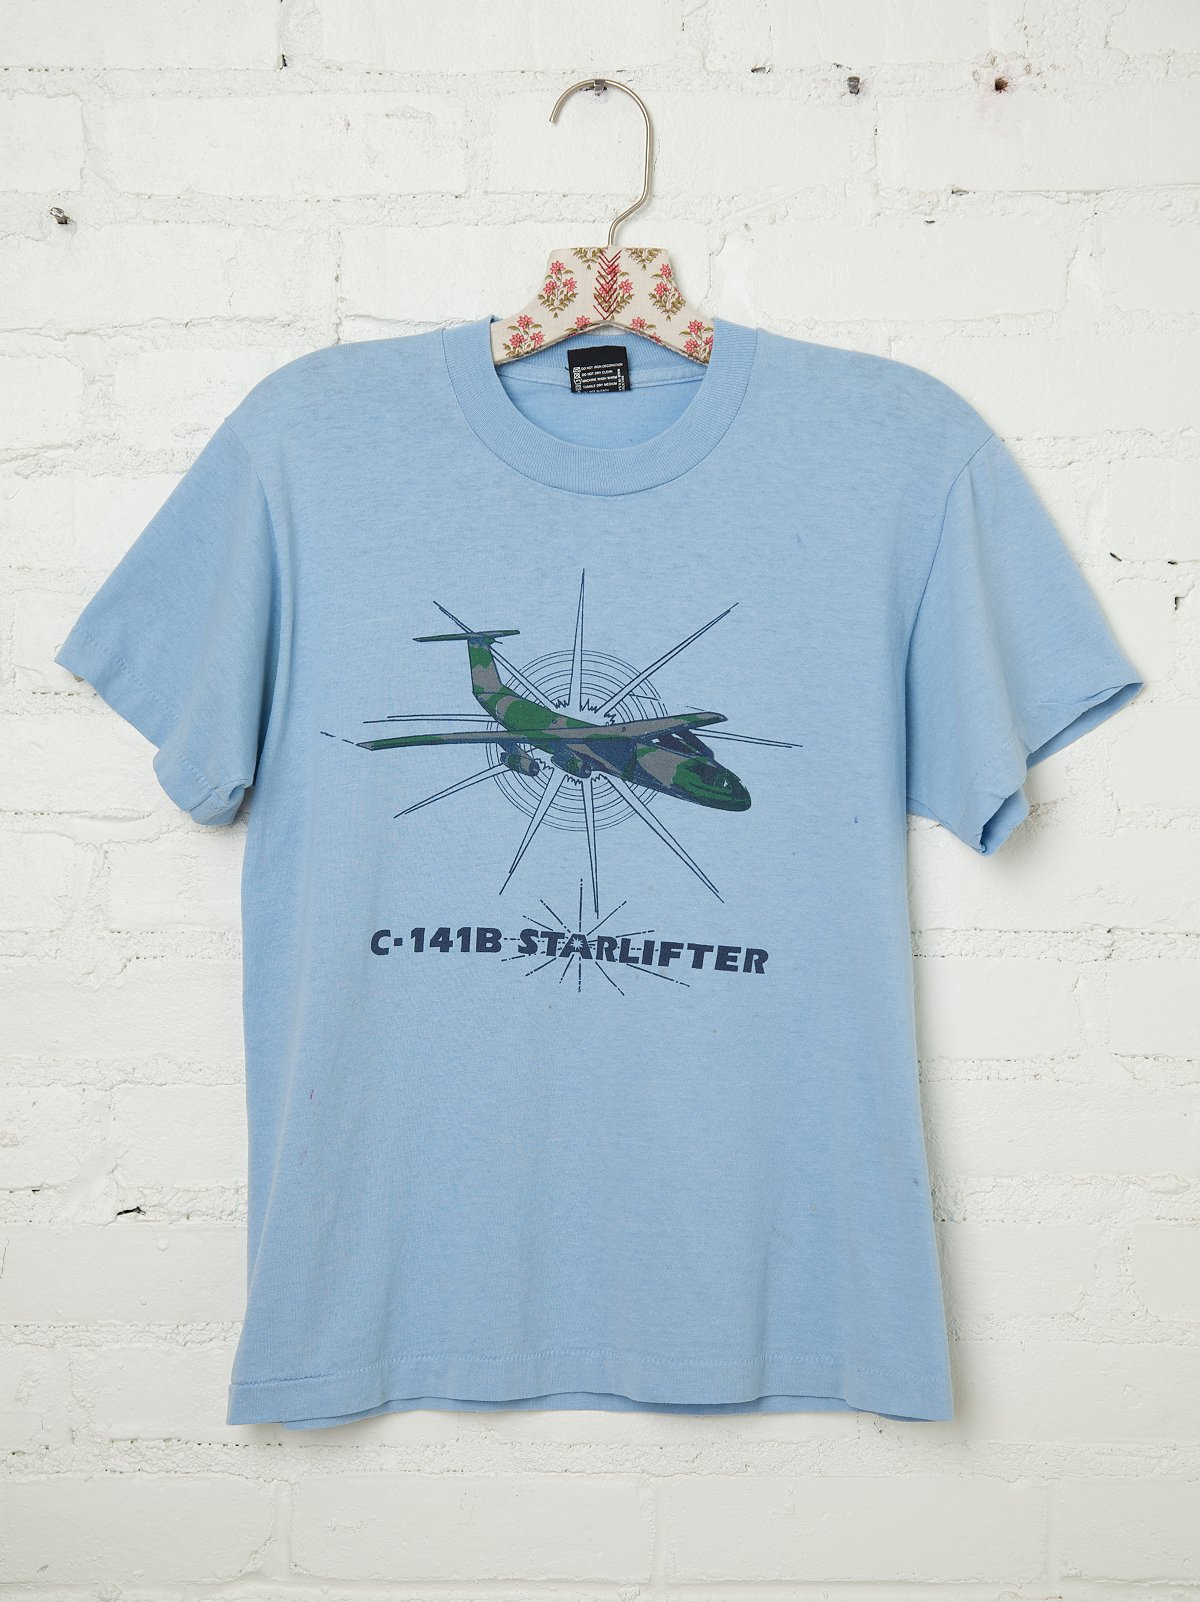 Vintage Airplane Shirt